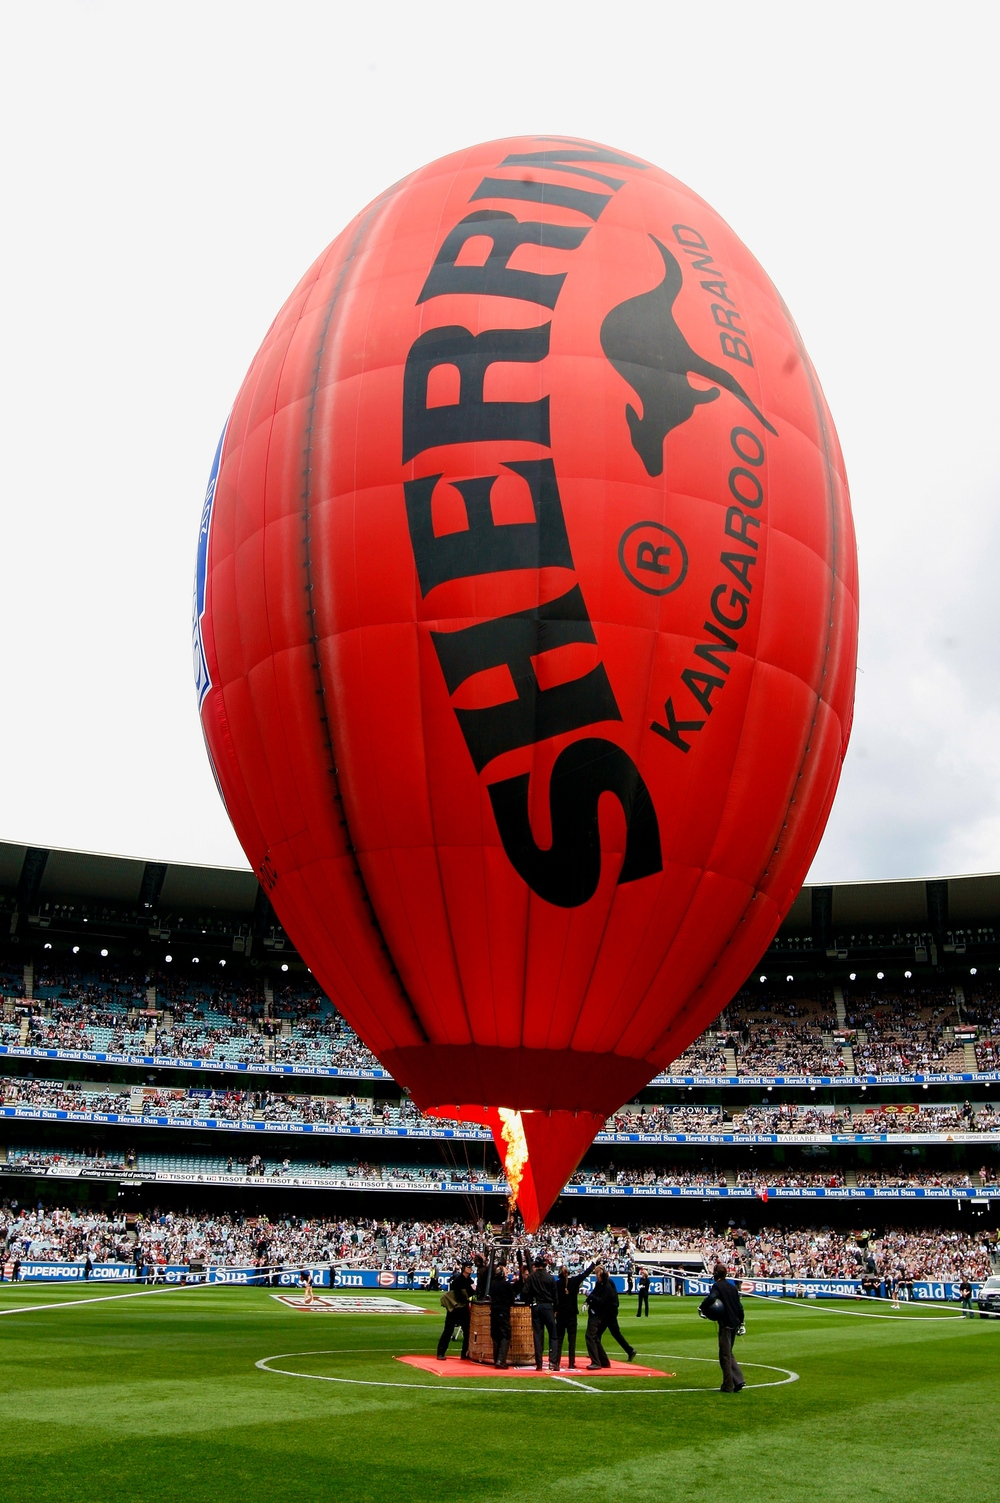 The Flying Footy at the 2010 AFL Grand FInal